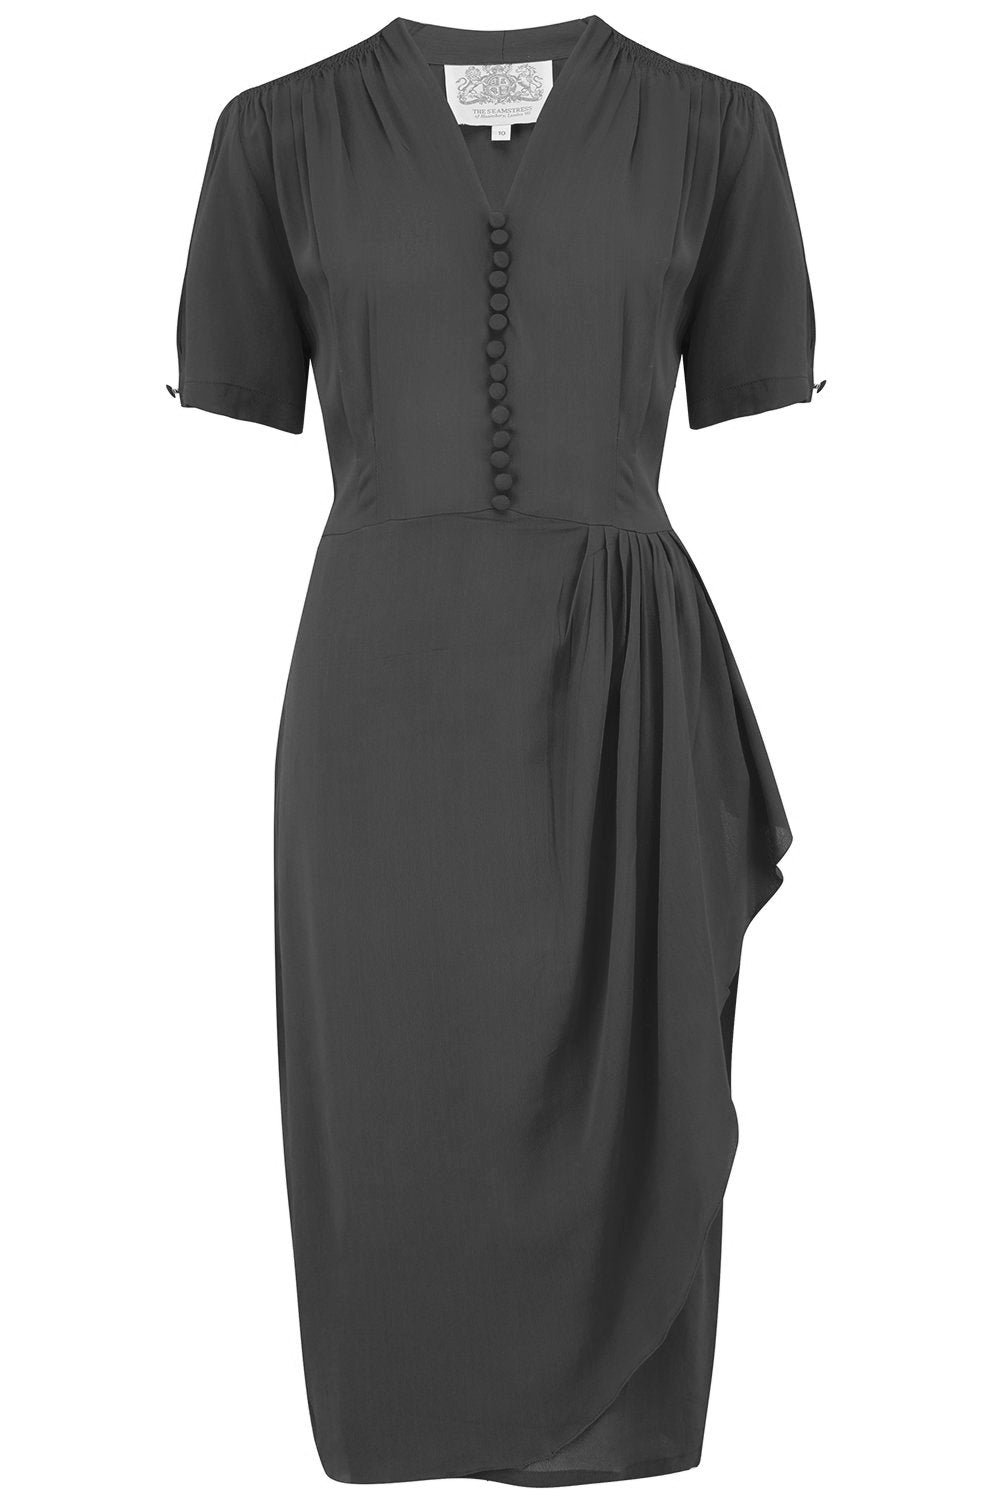 "The Seamstress of Bloomsbury ""Mabel"" Dress in Solid Black, A Classic 1940s Inspired Vintage Style - RocknRomance Clothing"